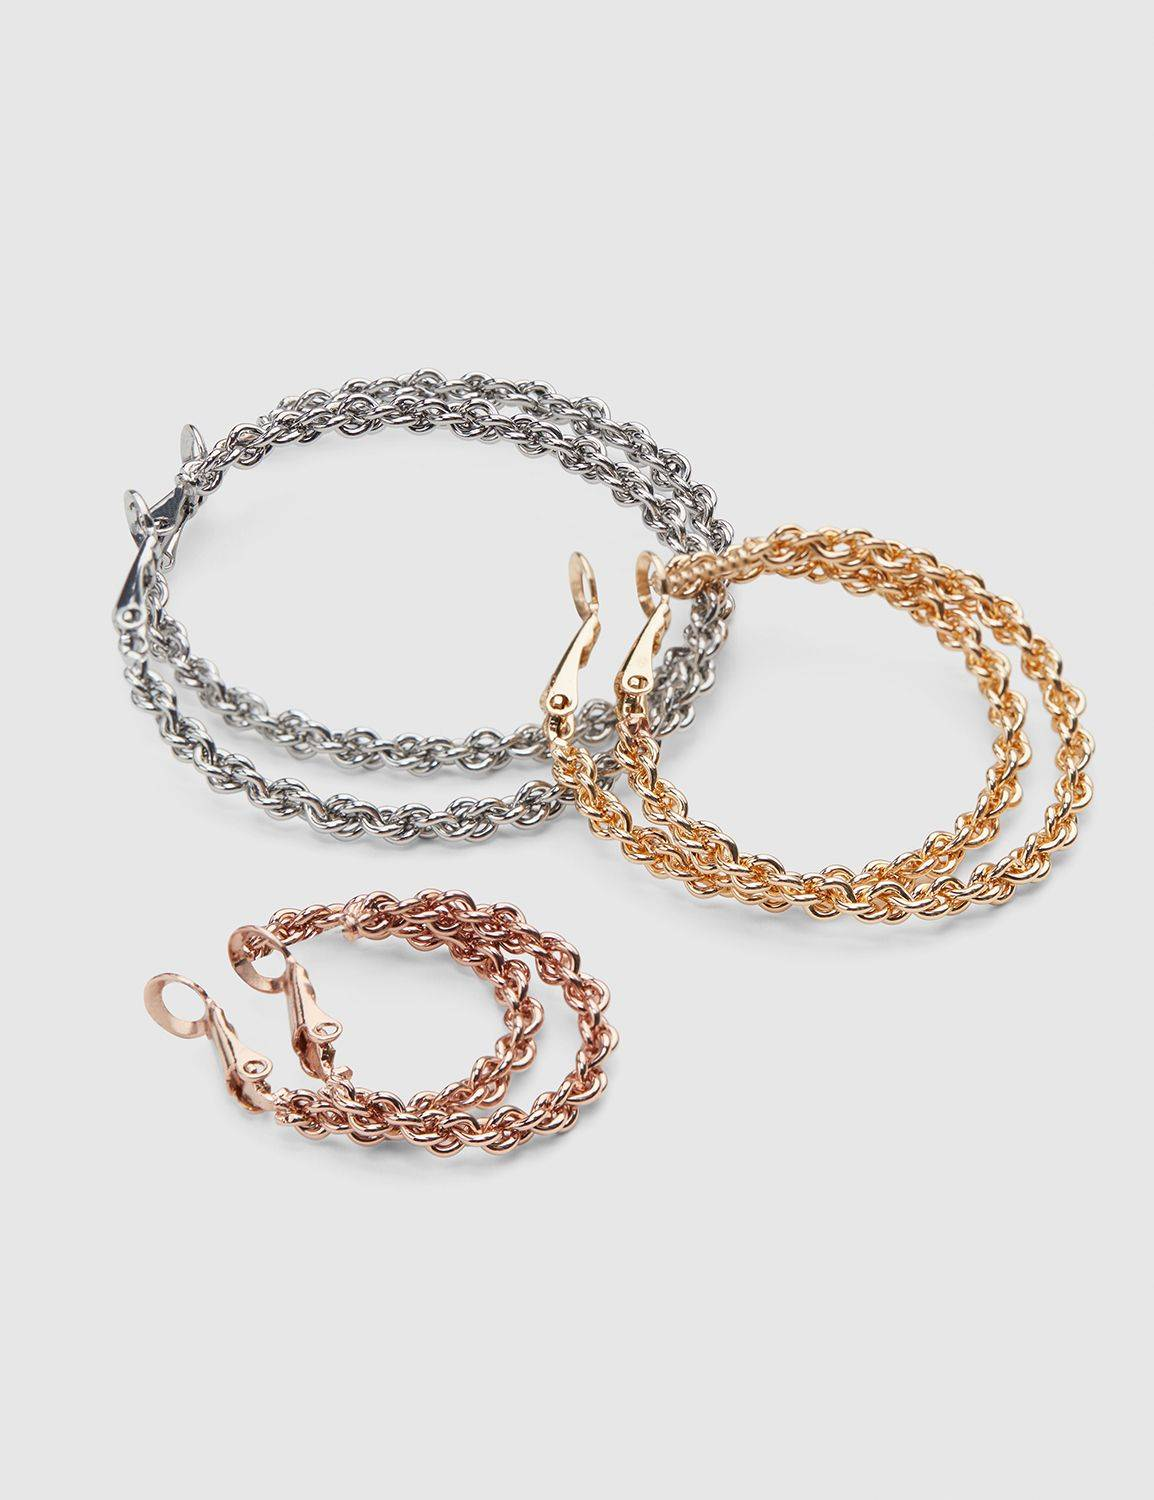 Lane Bryant Women's Multi-Size Twisted Hoop Earrings - 3-Pack ONESZ Mixed Metal